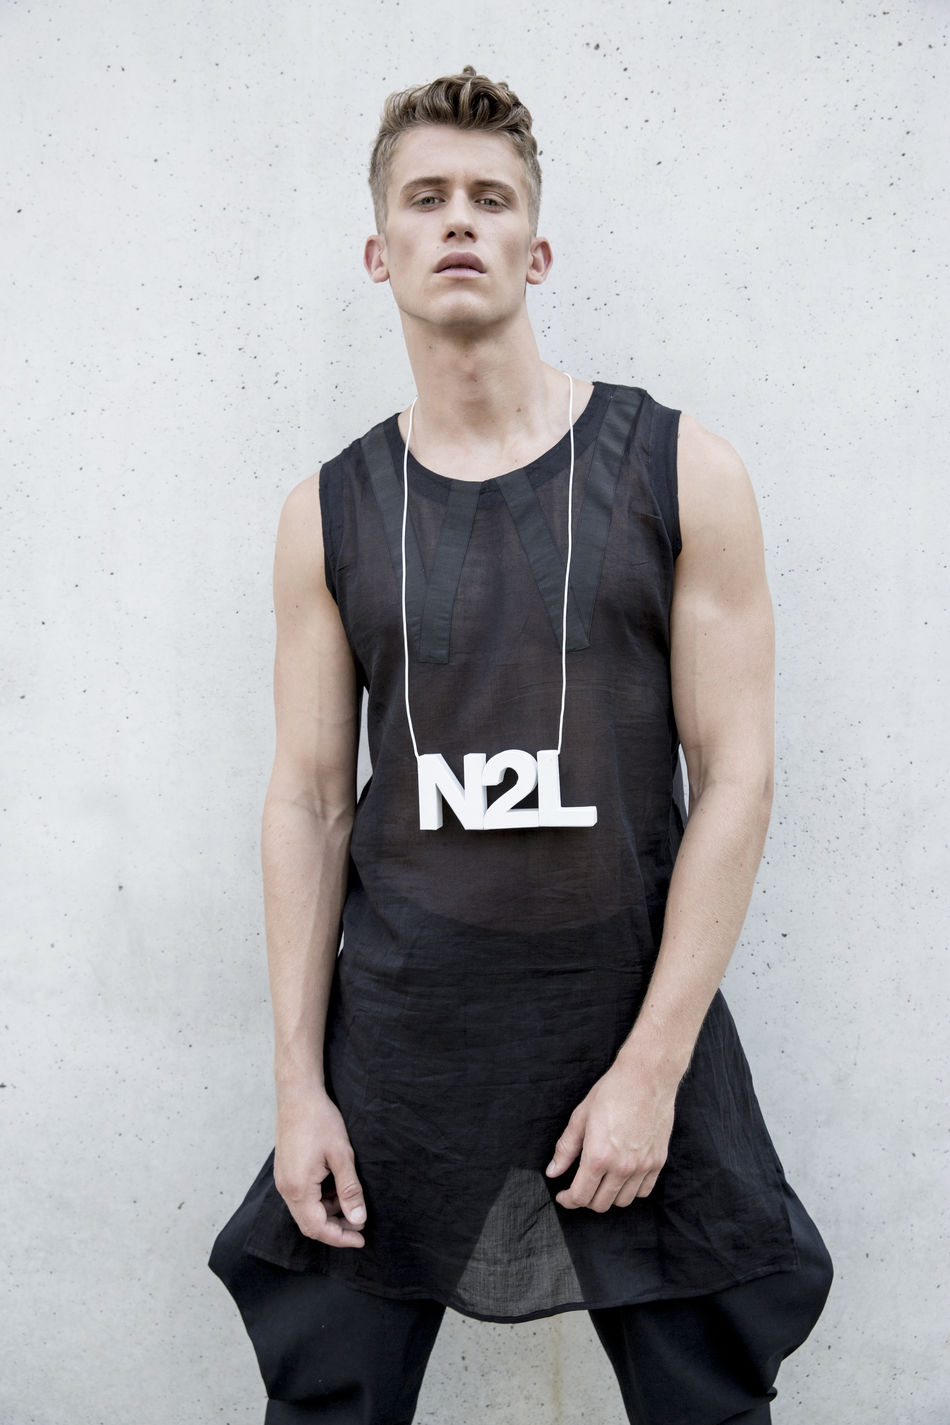 Architecture Berlin Beton Boyfriend Close Up Day Fashion Front View Lifestyles Never Too Late  One Man Only One Person Only Men Outdoors Outfit People Portrait Standing Streetwear Style Stylish Urban Wall Young Adult Young Adults